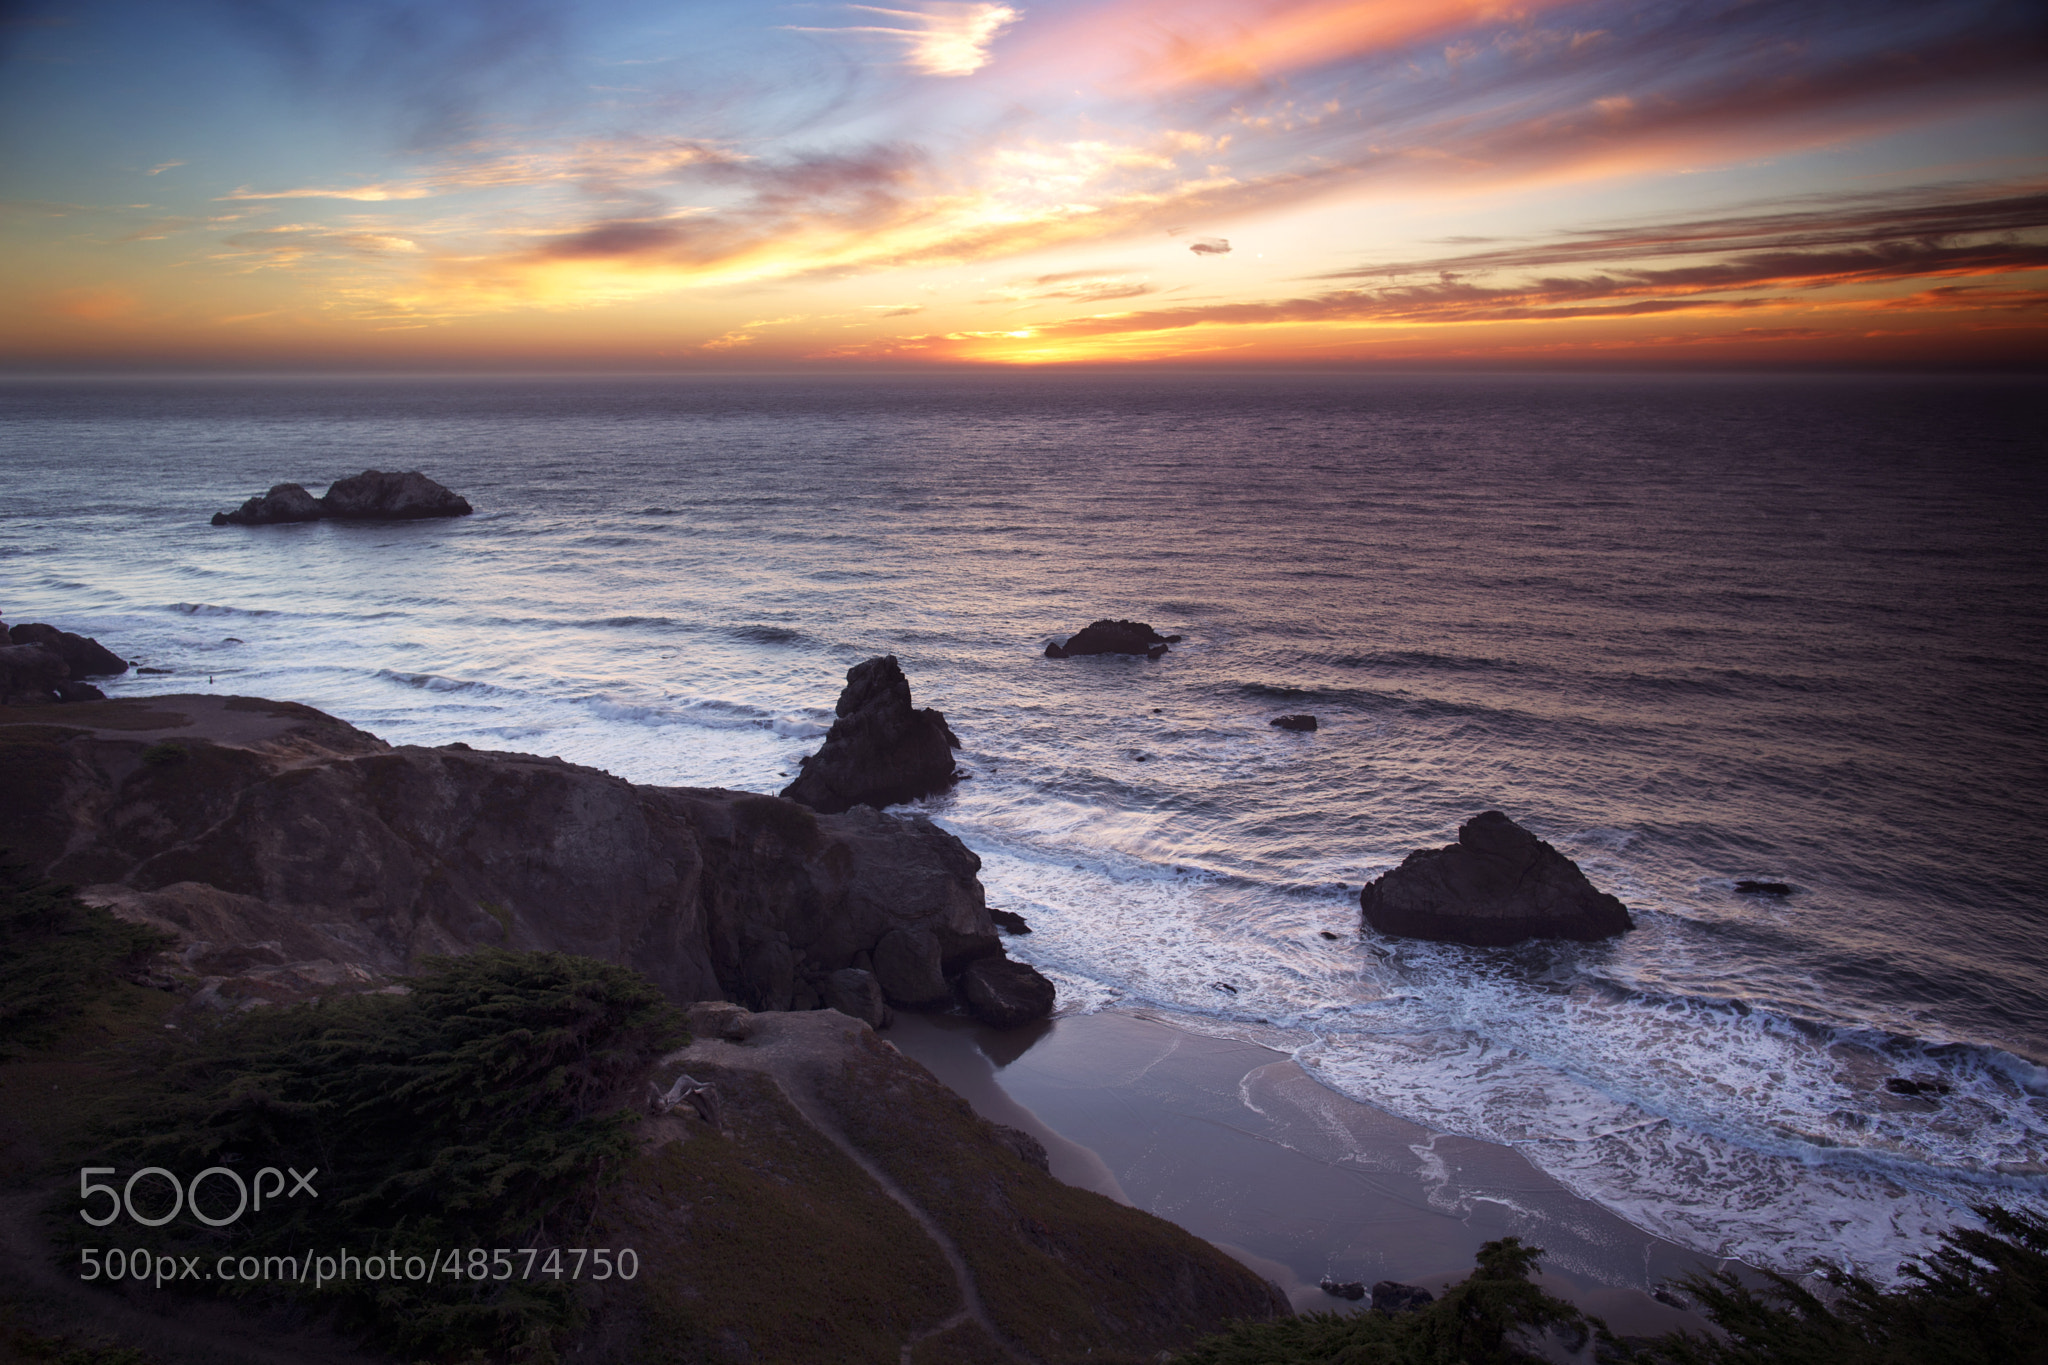 Photograph At Land's End by Ian Civgin on 500px